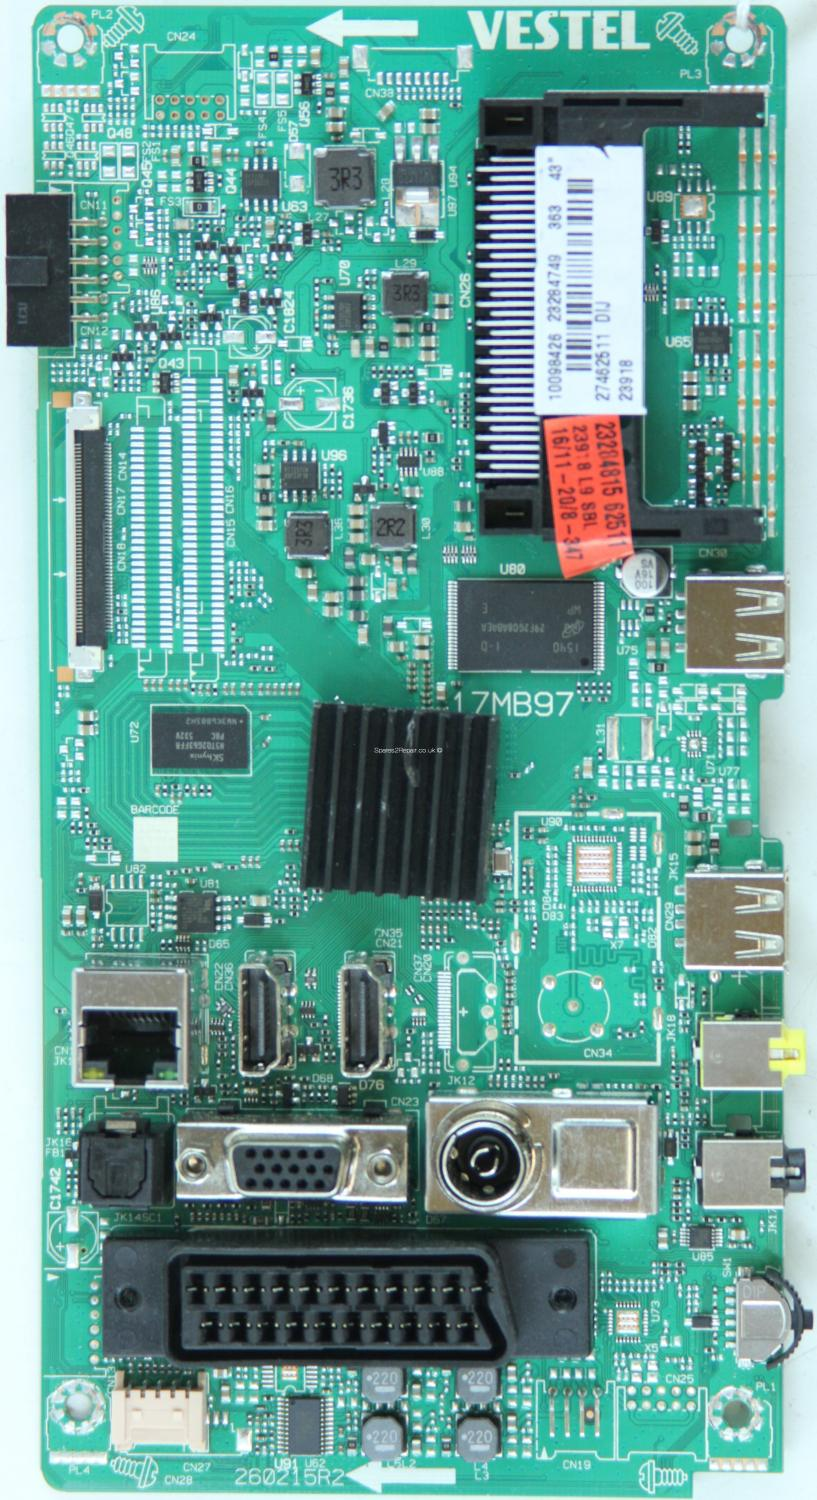 Hitachi 42HBT42UK - Main AV - 23284749 - 17MB97 - 260215R2